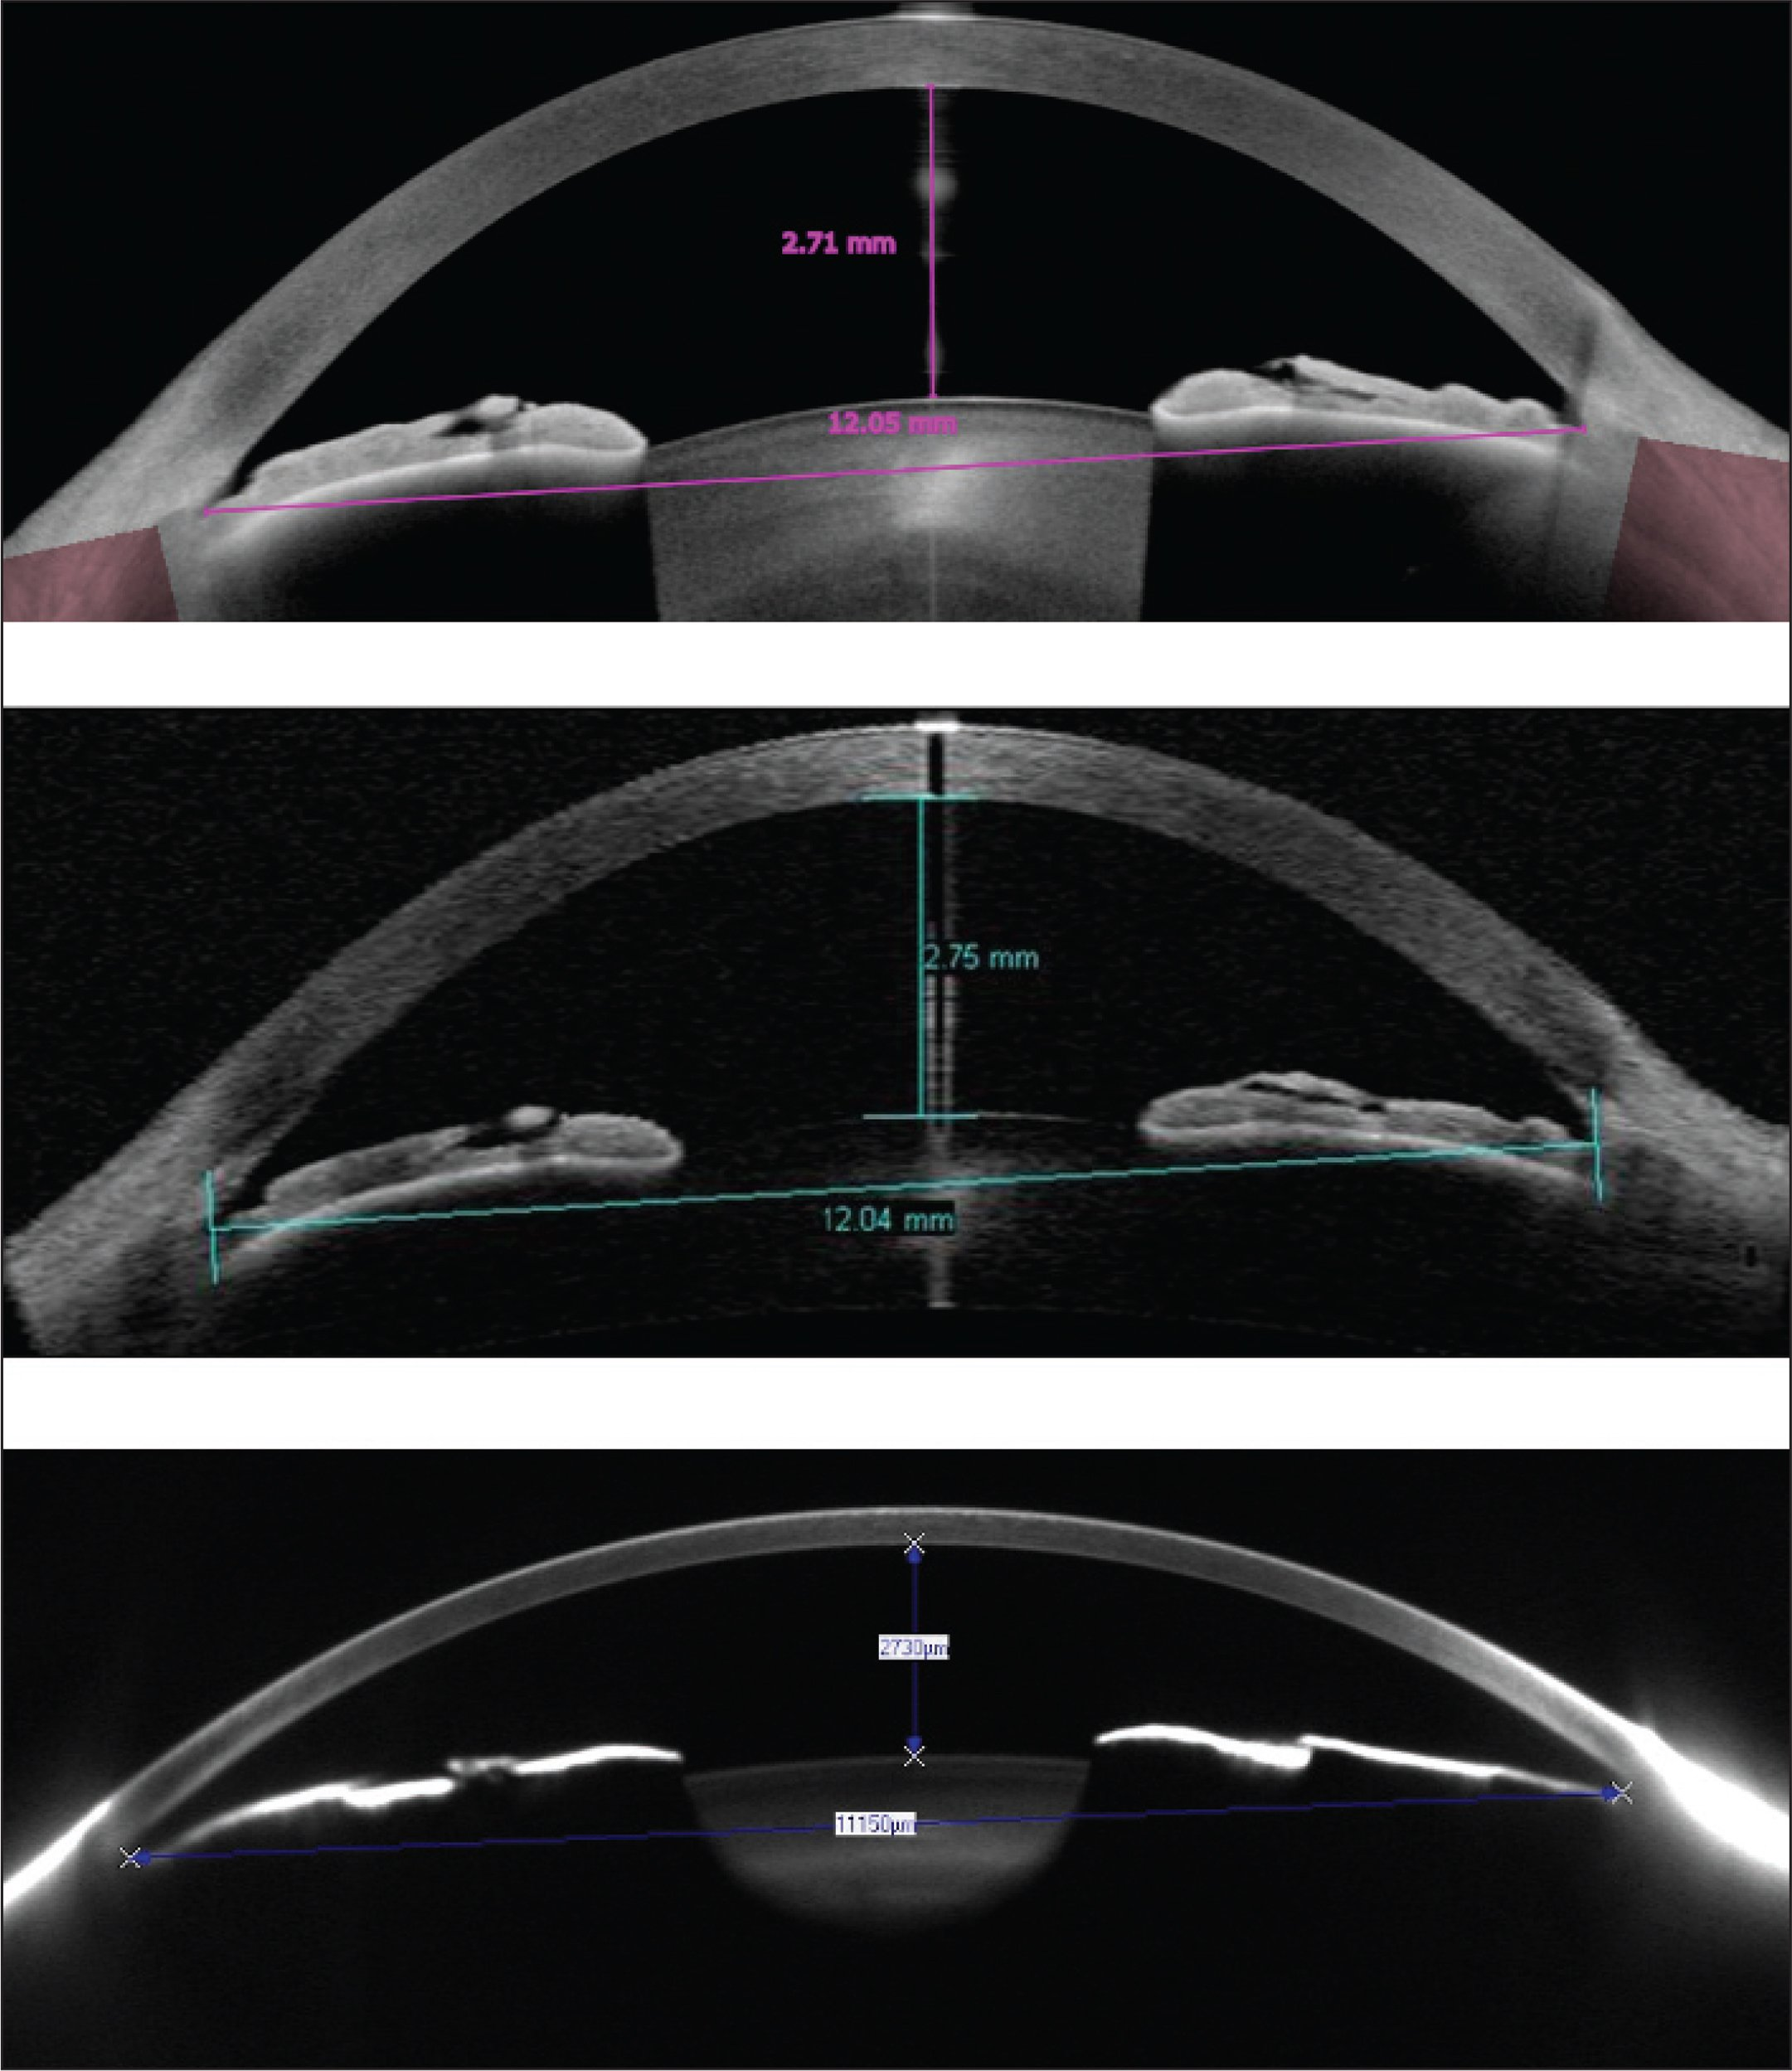 Angle-to-angle and aqueous depth distances at the horizontal meridian measured with the Anterion SS-OCT (Heidelberg Engineering GmbH) (top), Visante TD-OCT (Carl Zeiss Meditec AG) (middle), and Pentacam HR Scheimpflug camera (Oculus Optikgeräte GmbH) (bottom).